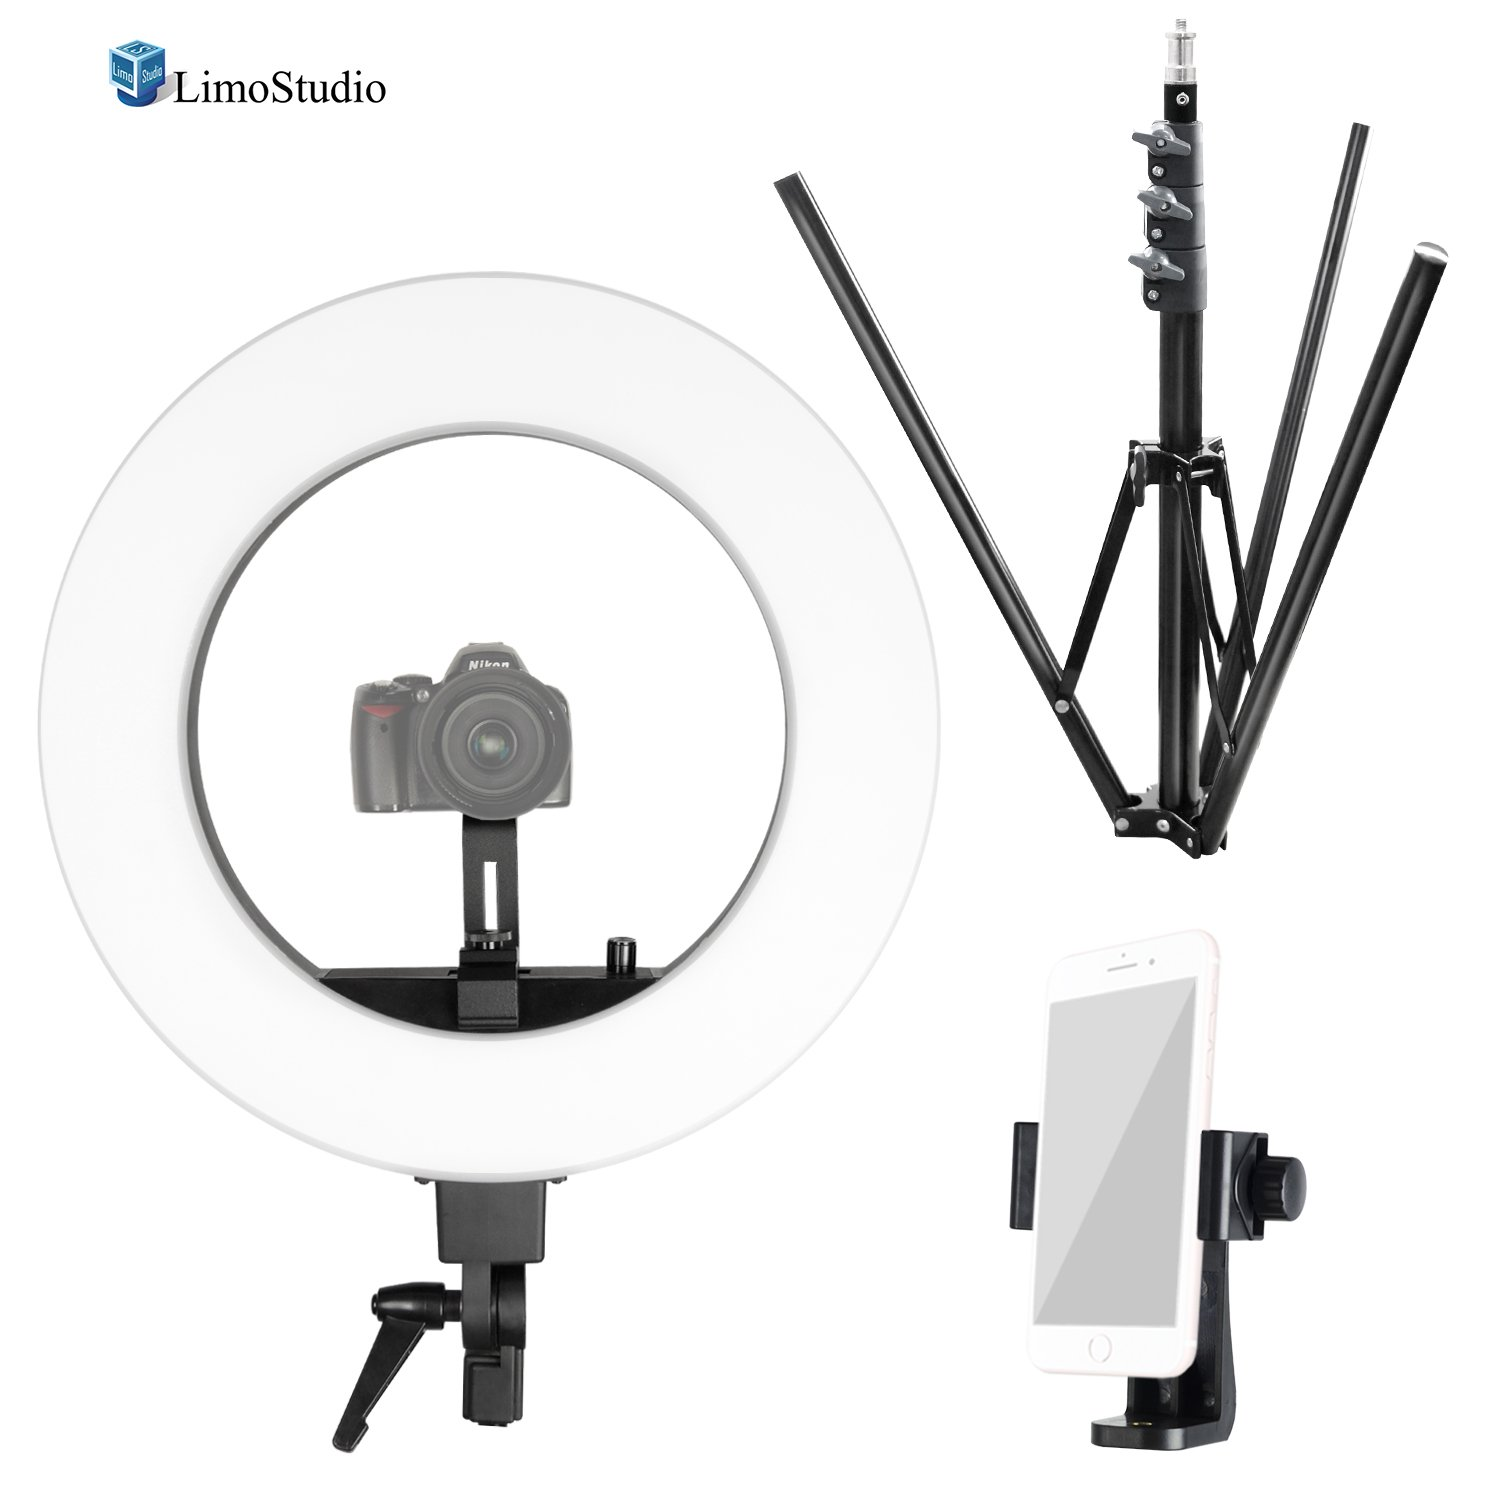 LimoStudio Round 18'' Diameter LED Ring Light with Tripod Stand, Slide Camera Mounting Adapter, Cellphone Spring Clip Holder, Dimmable Switch for Brightness Control, Photography Studio, AGG2536